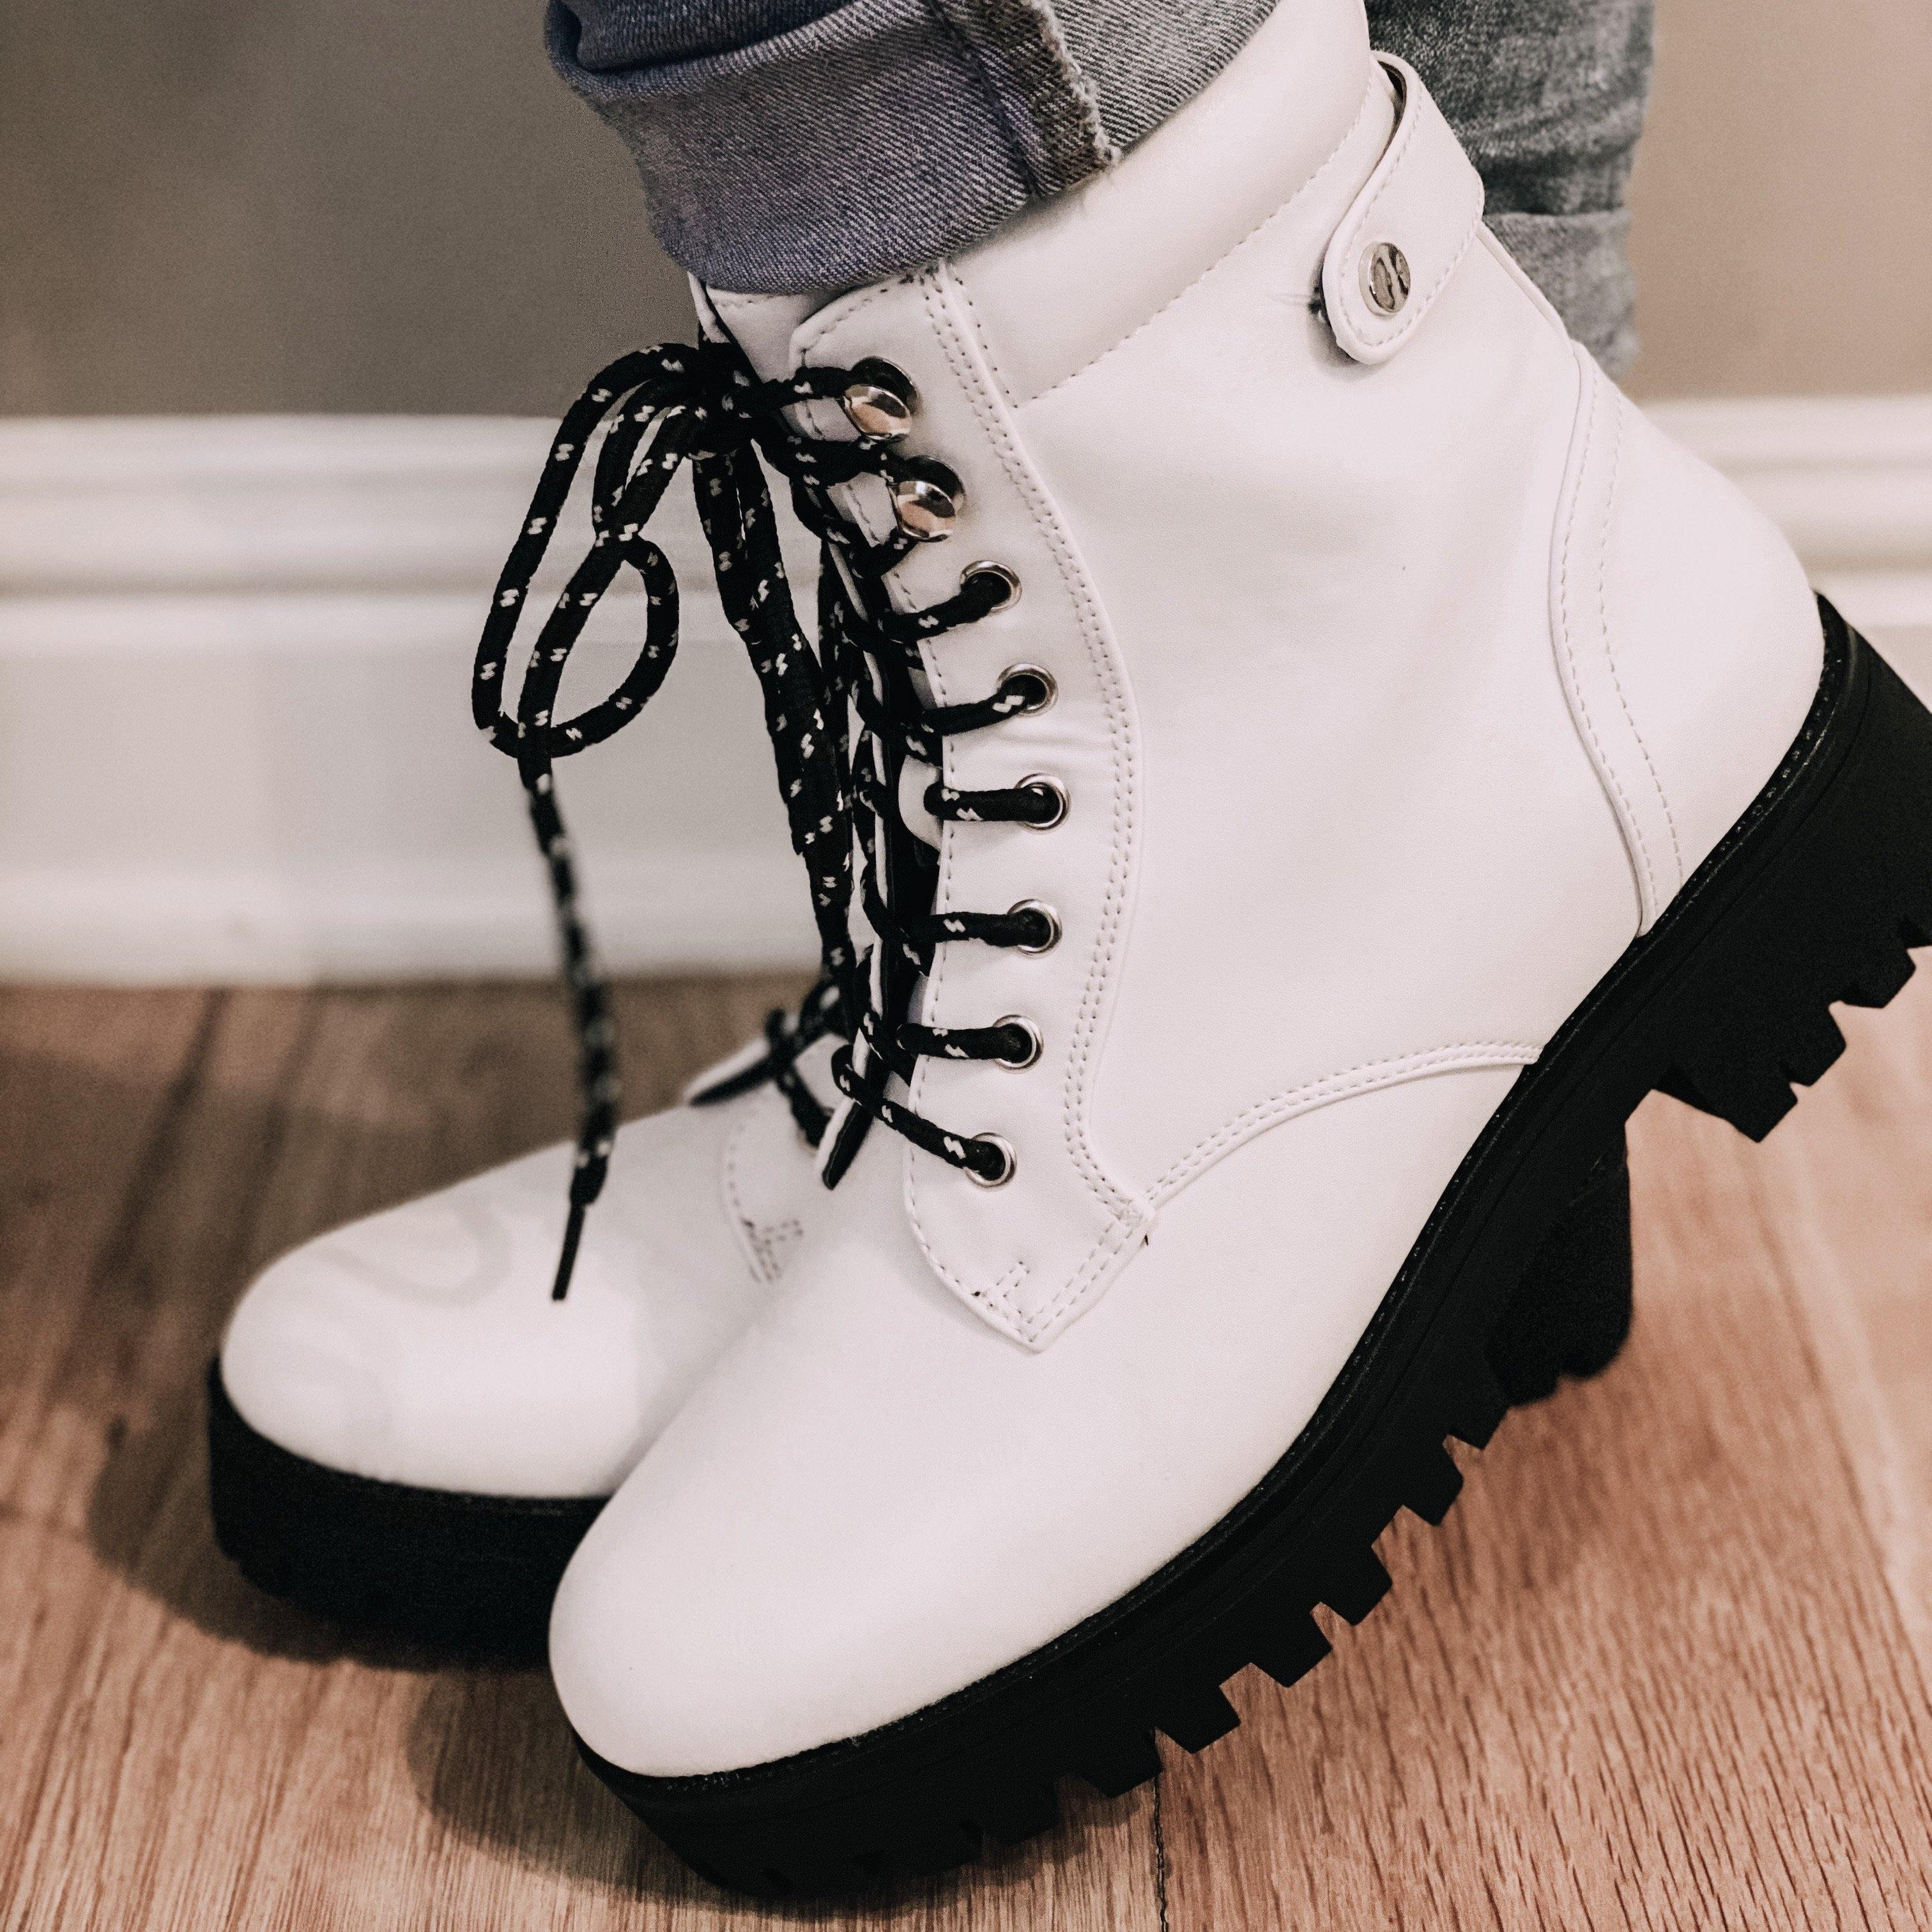 LUG SOLE LACE UP COMBAT BOOTS